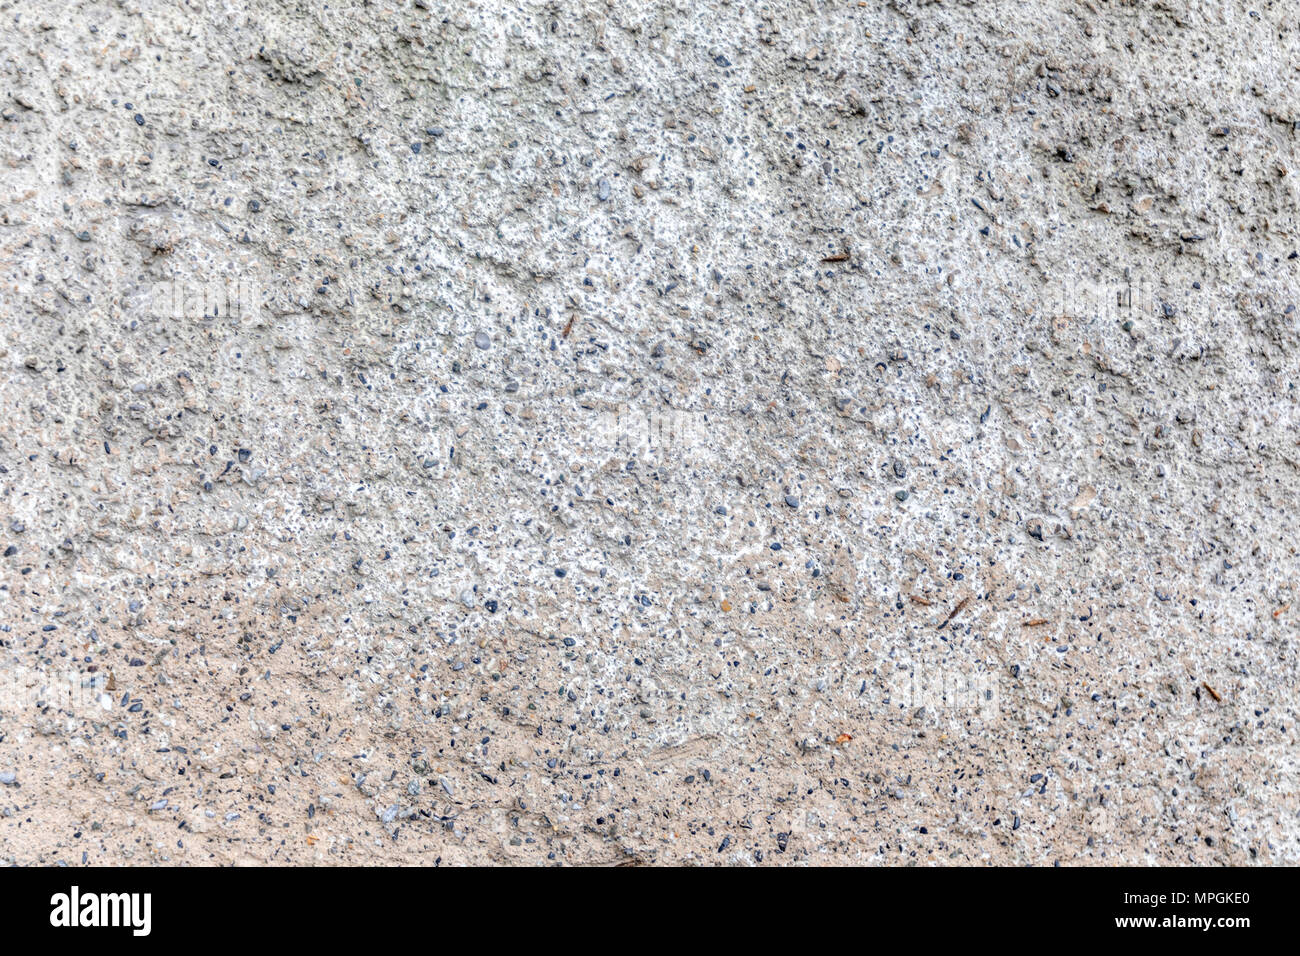 Wall with cement. Gray stone background. Wallpaper. - Stock Image